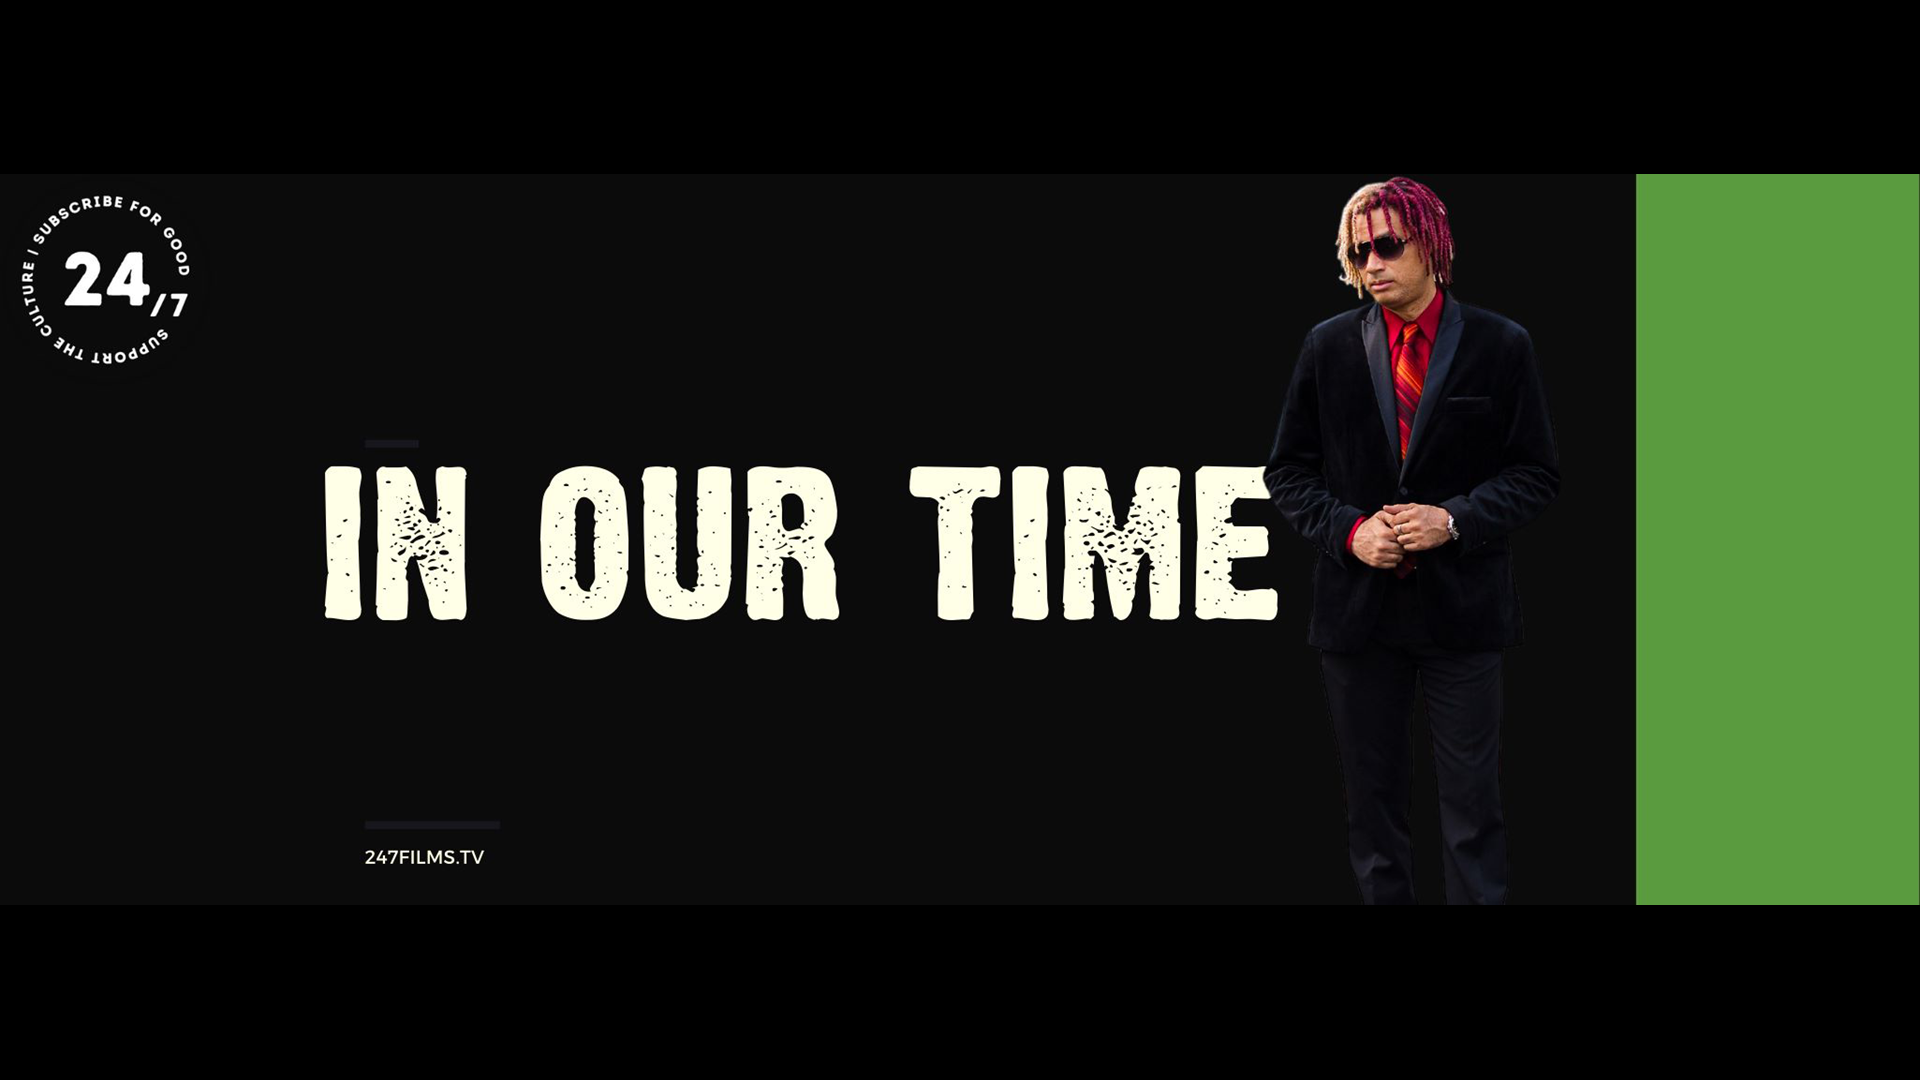 Shefik to Produce and Host New Video Series 'In Our Time' for 247films.tv